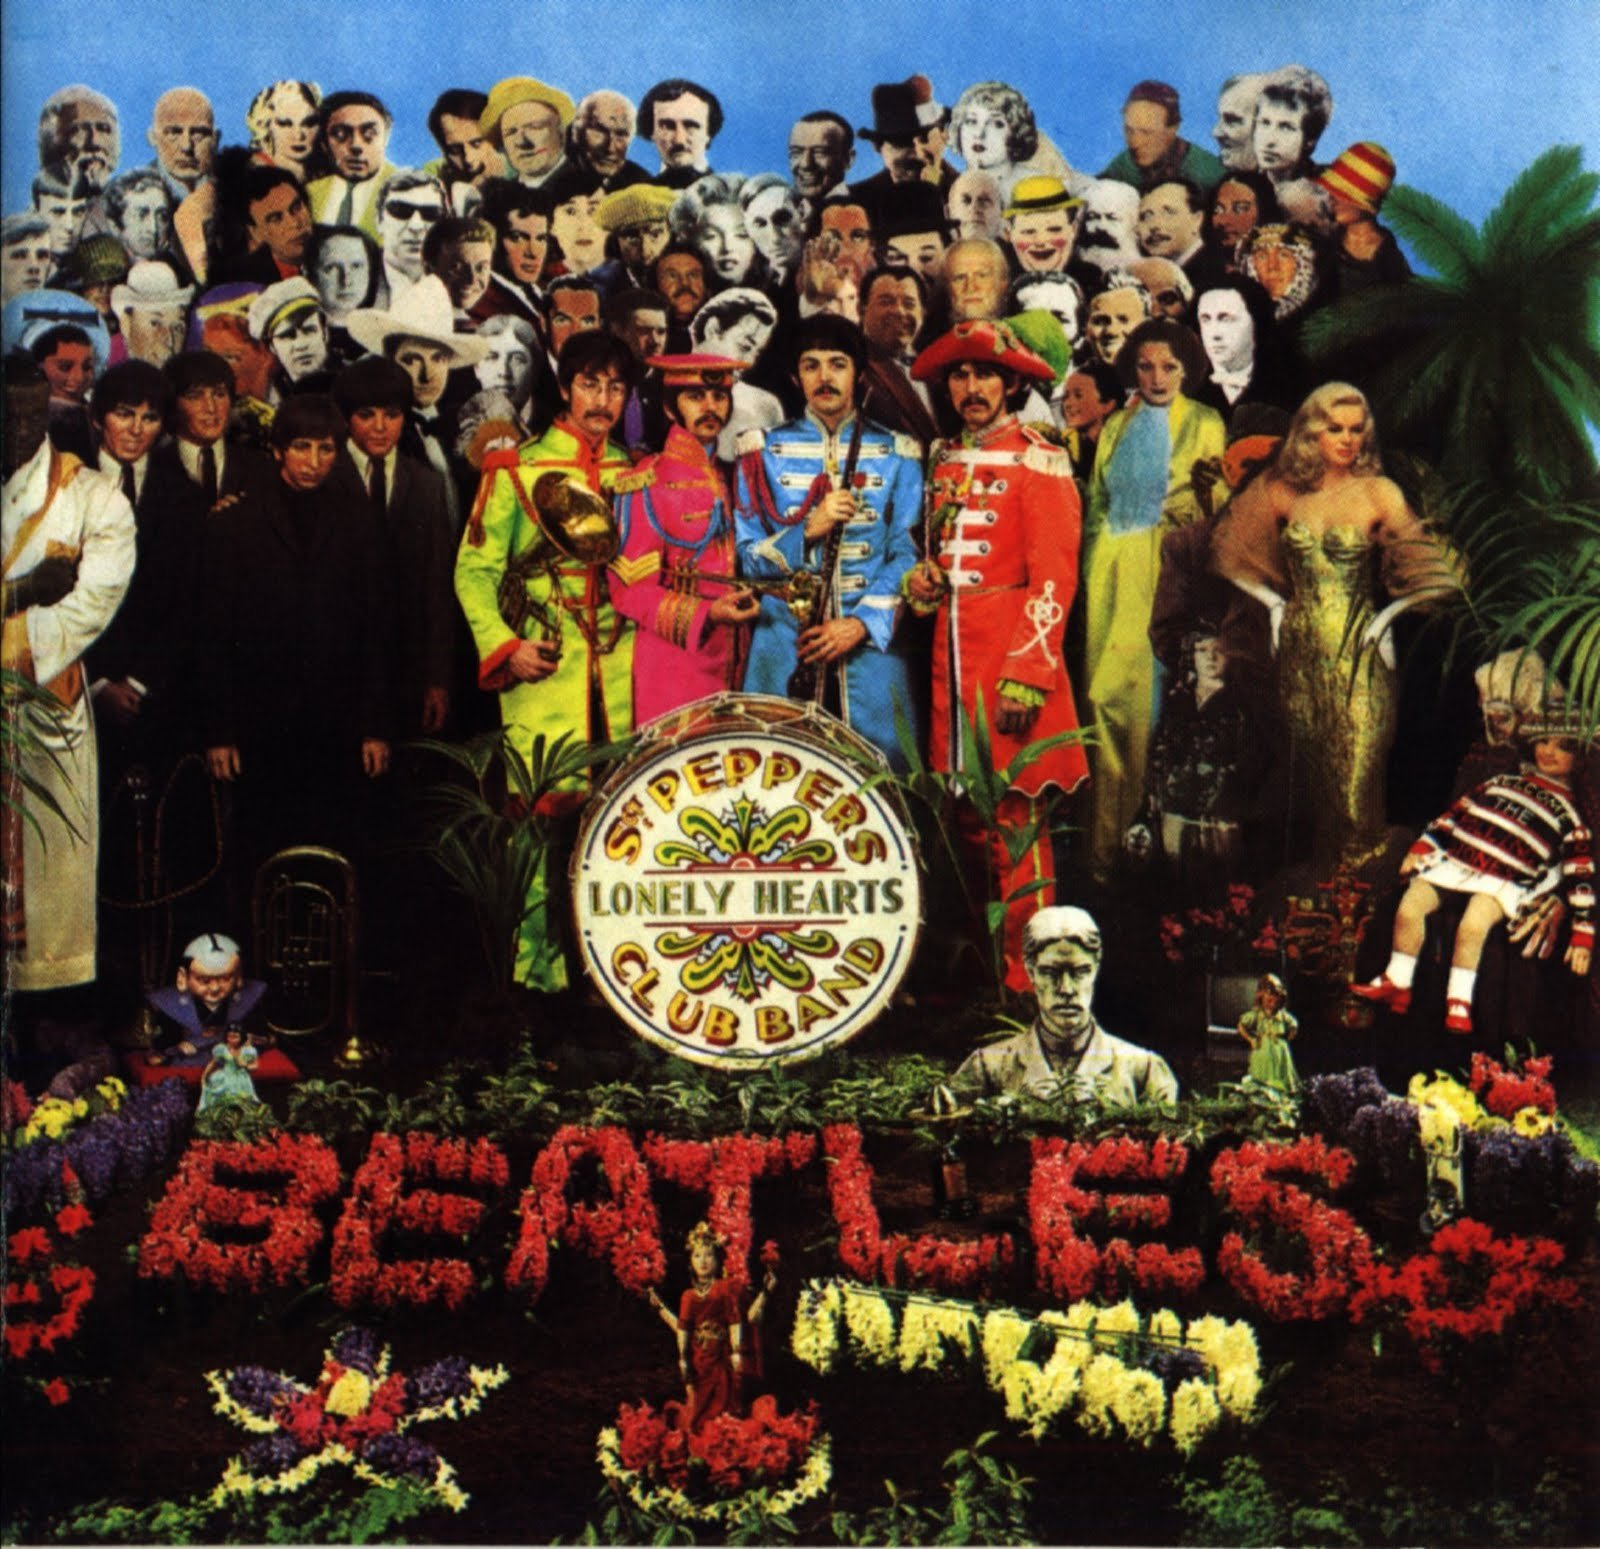 Image - The sleeve to Sergeant Pepper's Lonely Hearts Club Band